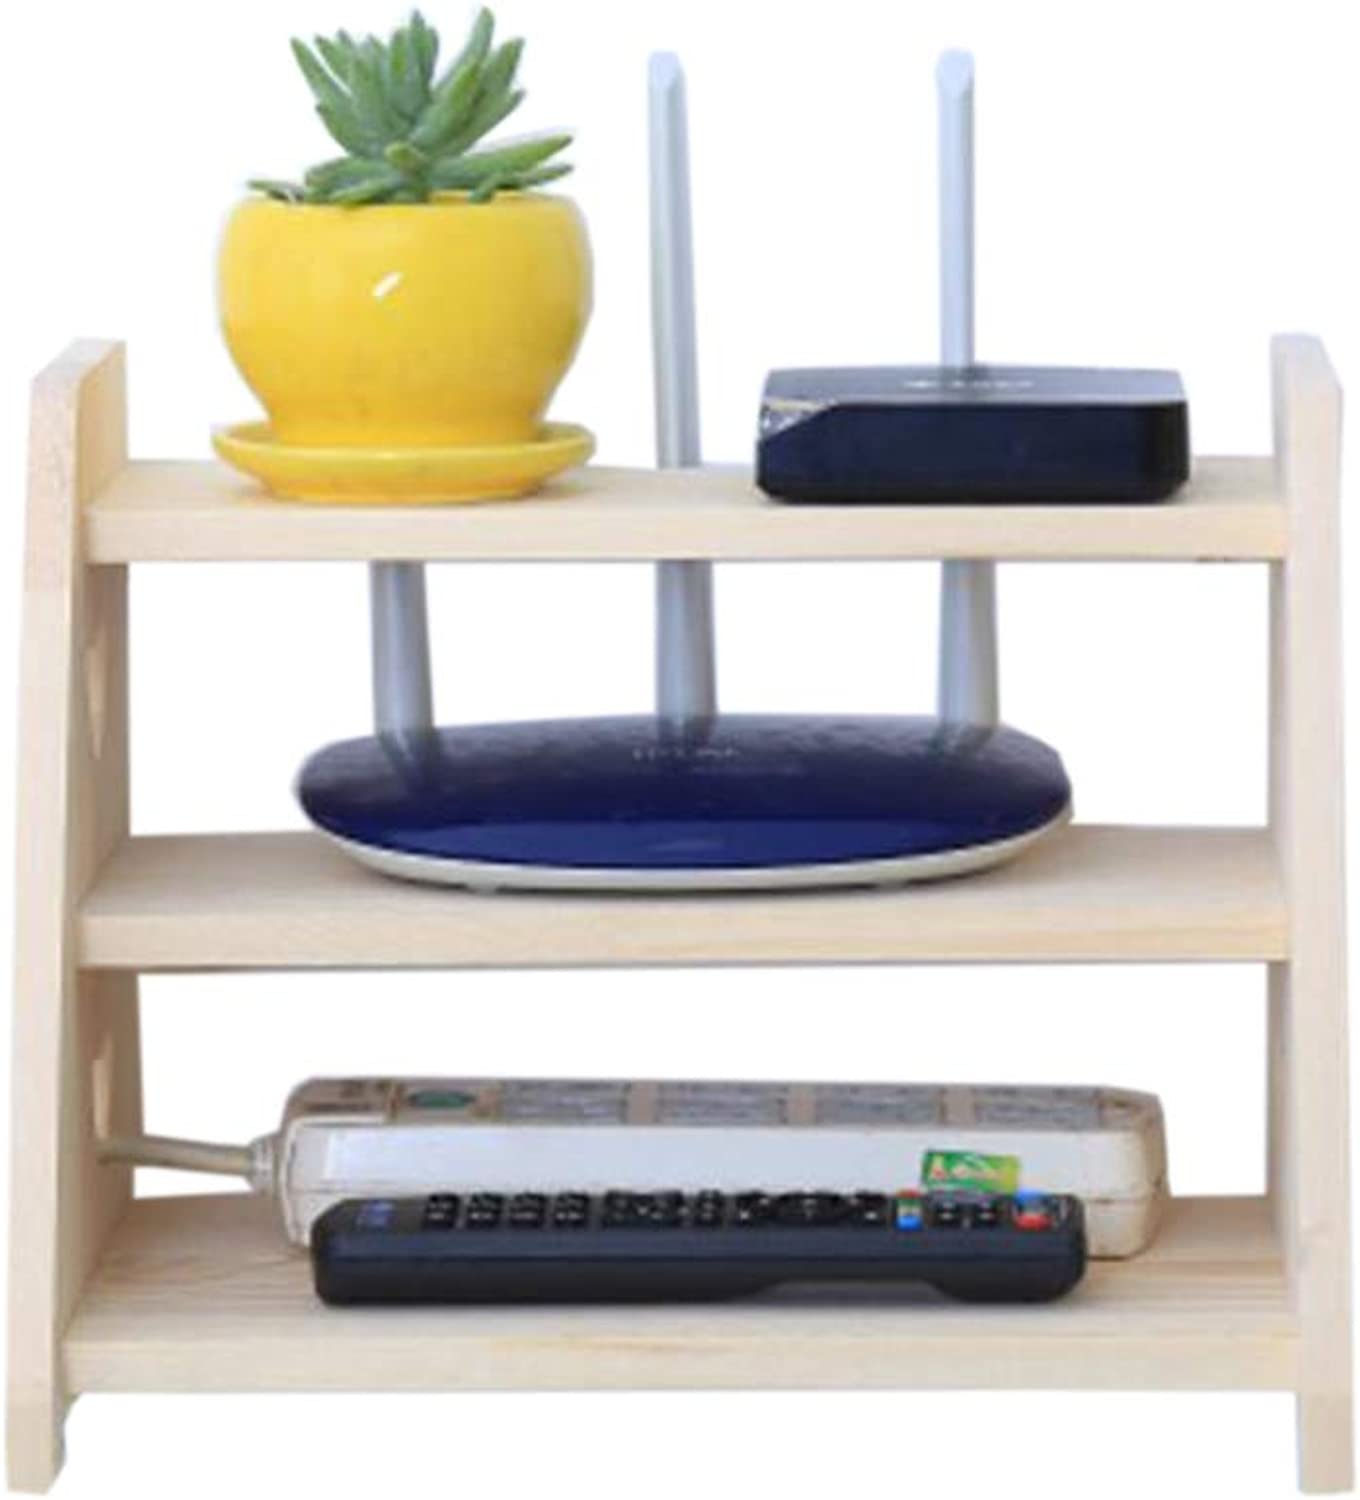 Floating Rack WiFi Wall Mount Bracket Solid Wood Multi-Layer Storage Box Versatile, Multiple colors (color   3 Layers of Wood)